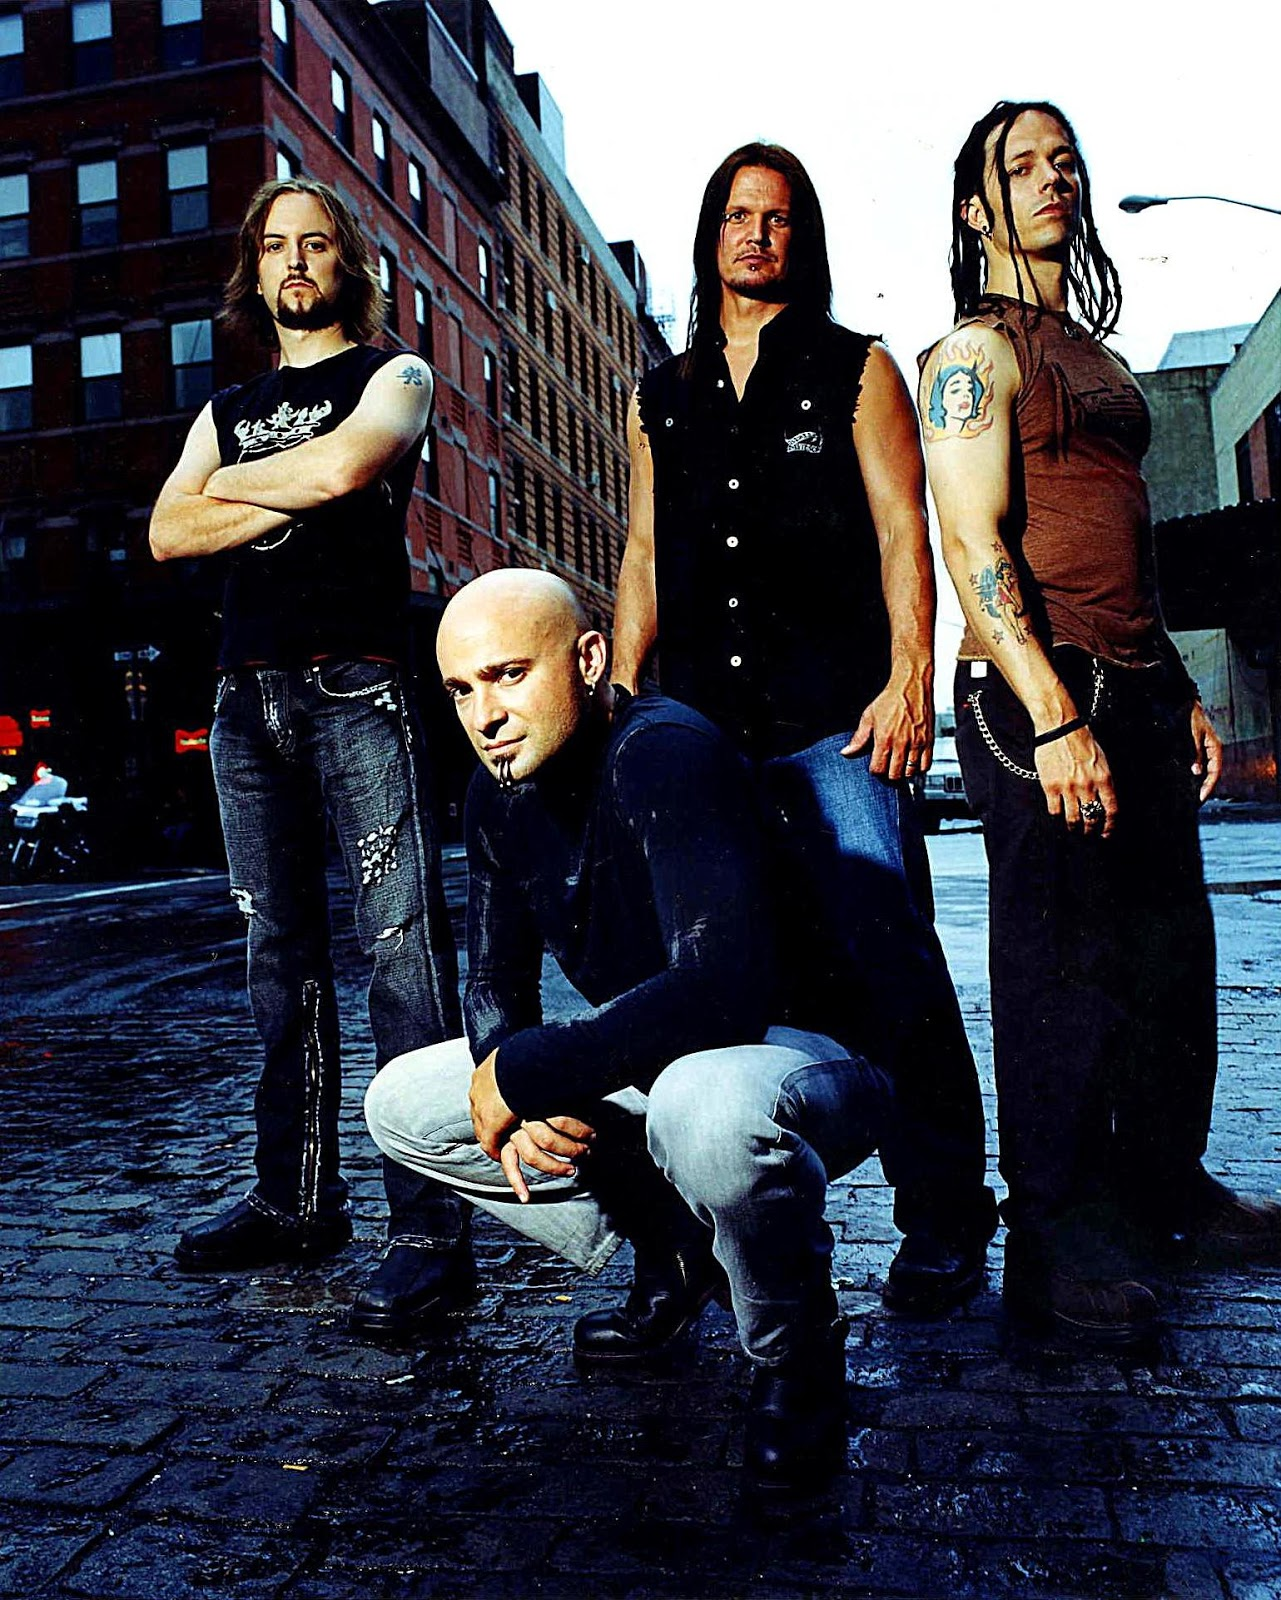 Recommend you album disturbed fist lyric ten thousand 72